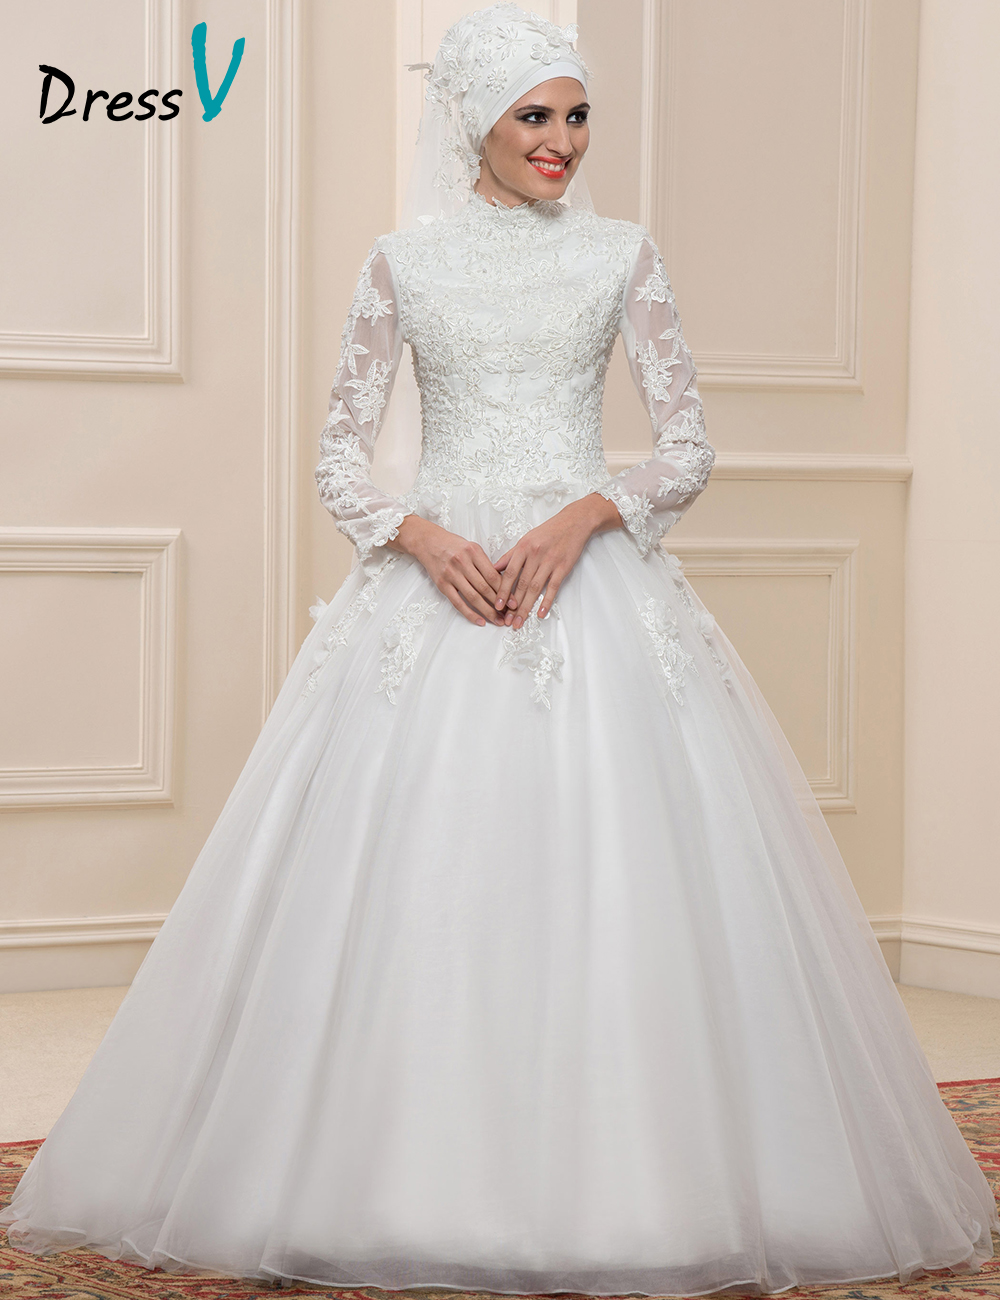 Dressv muslim lace ball gown wedding dresses long sleeves for Applique for wedding dress